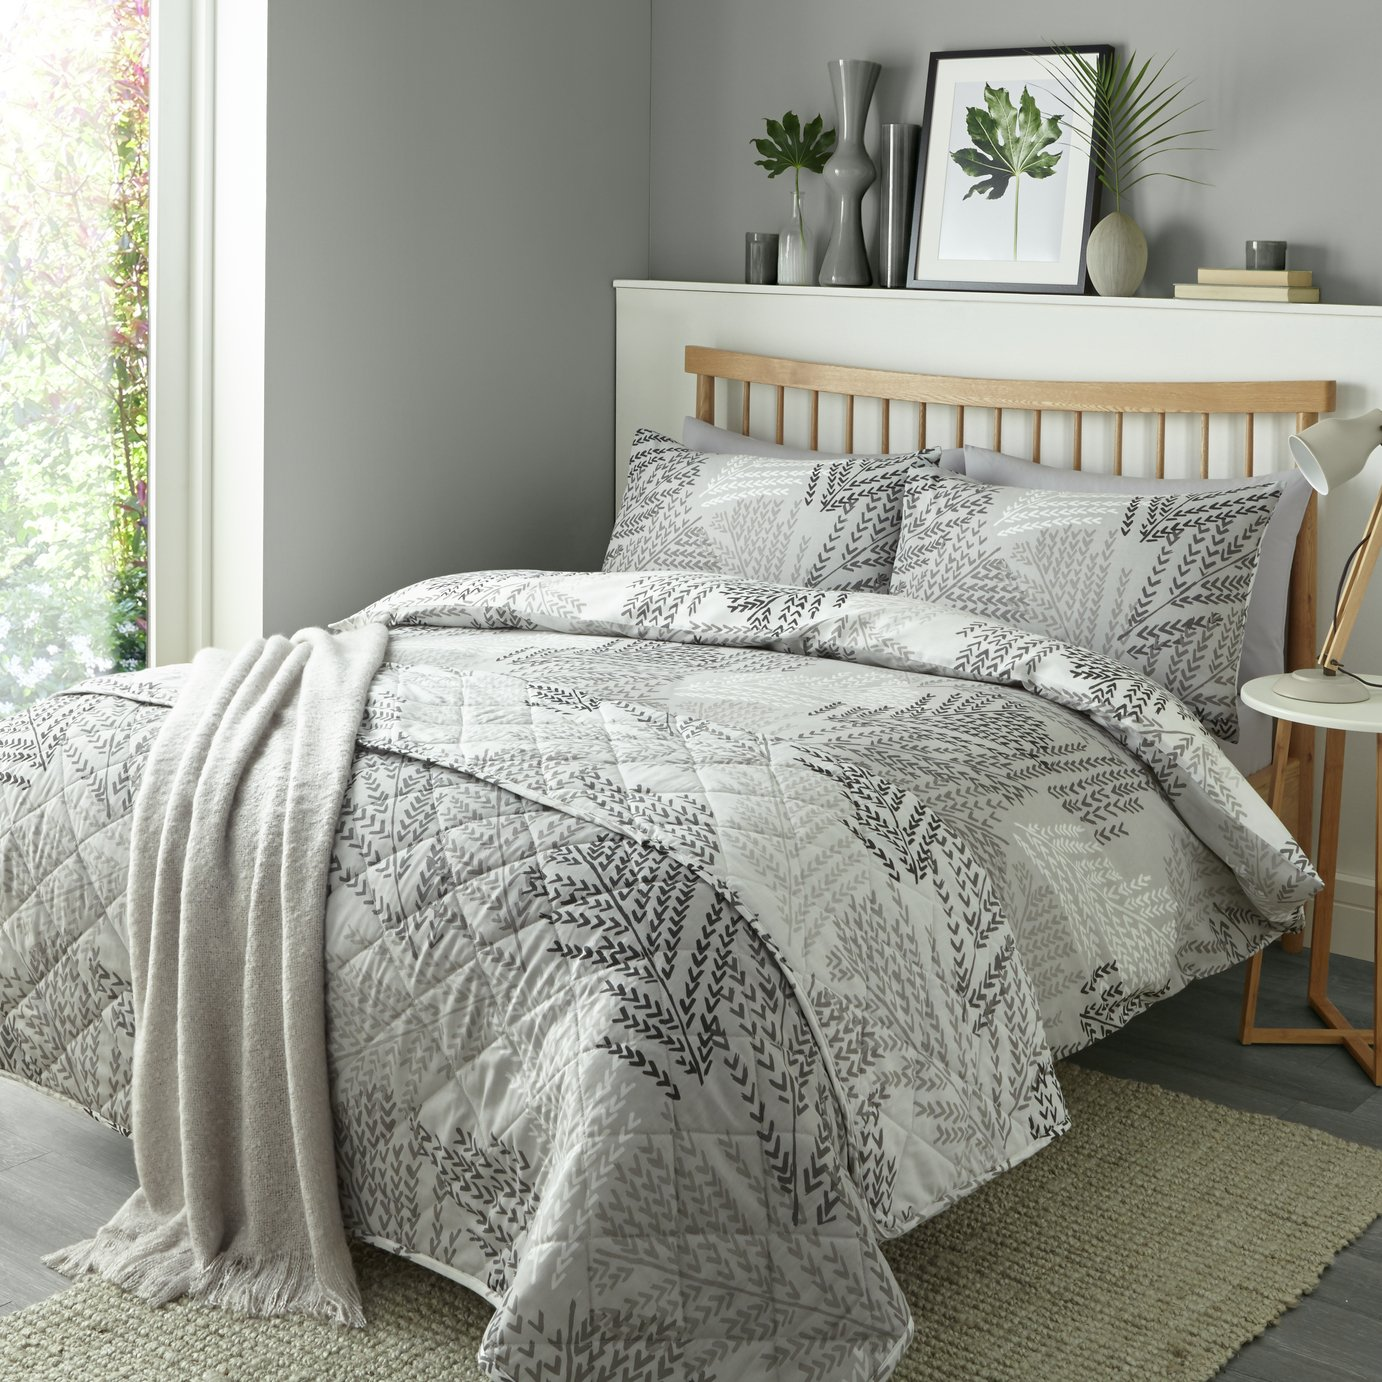 Image of Fusion Alena Silver Bedding Set - Double